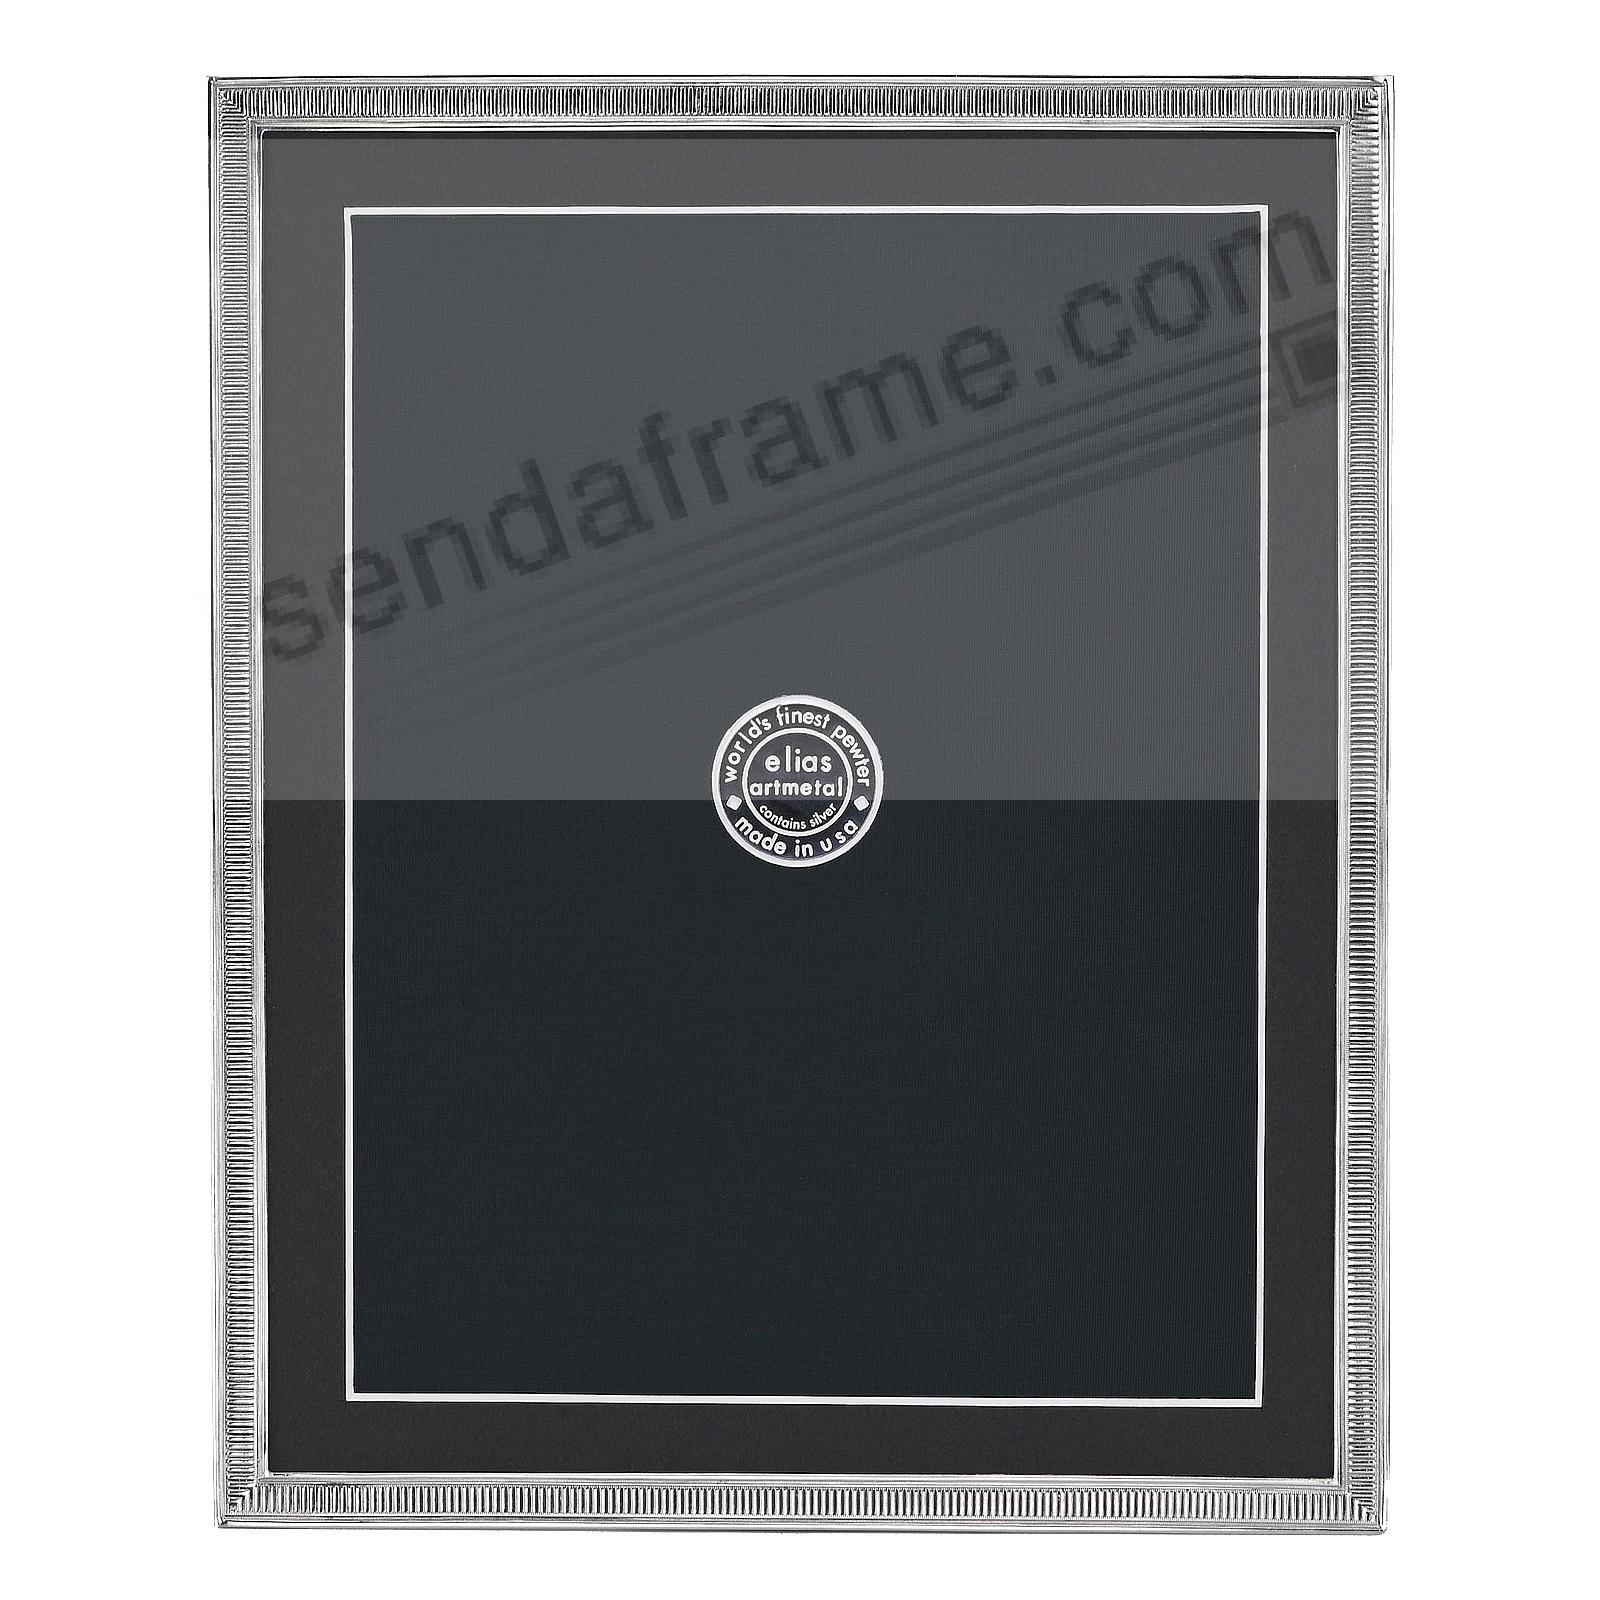 LINE BY LINE Fine Silvered Pewter frame 8x10/7x9 by Elias Artmetal®